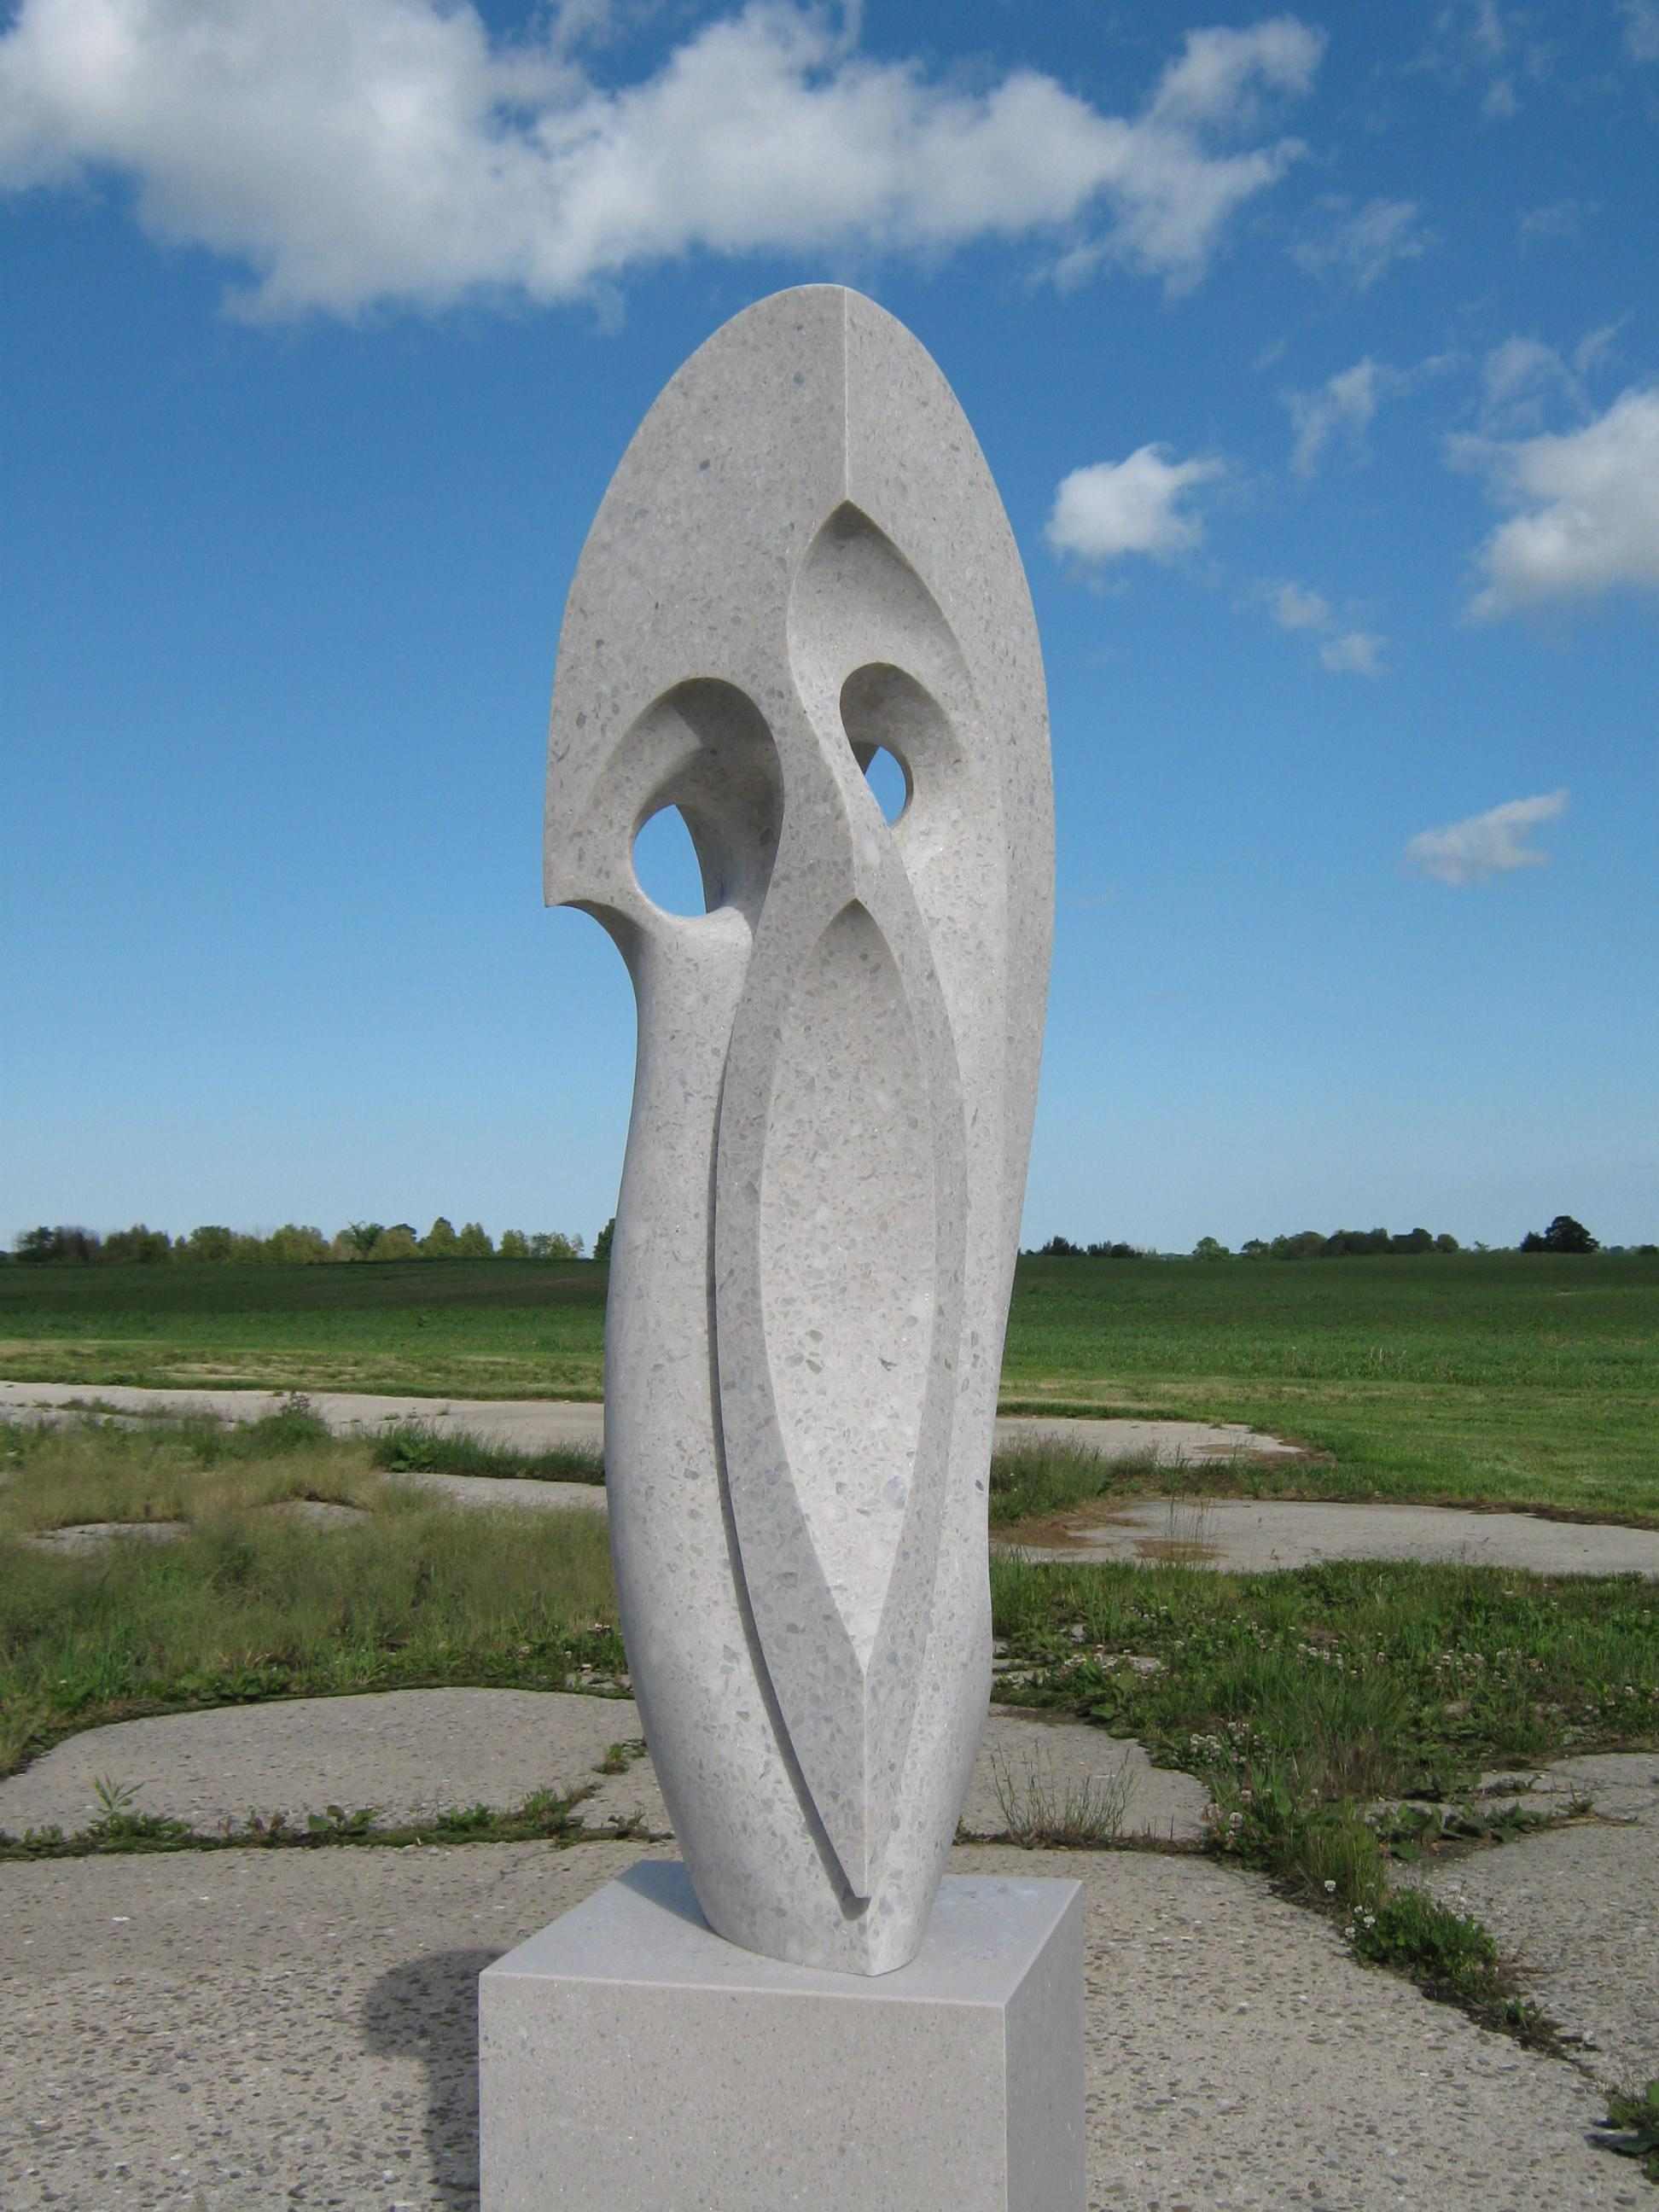 Curved Space - A tall white outdoor sculpture with flowing lines and curves